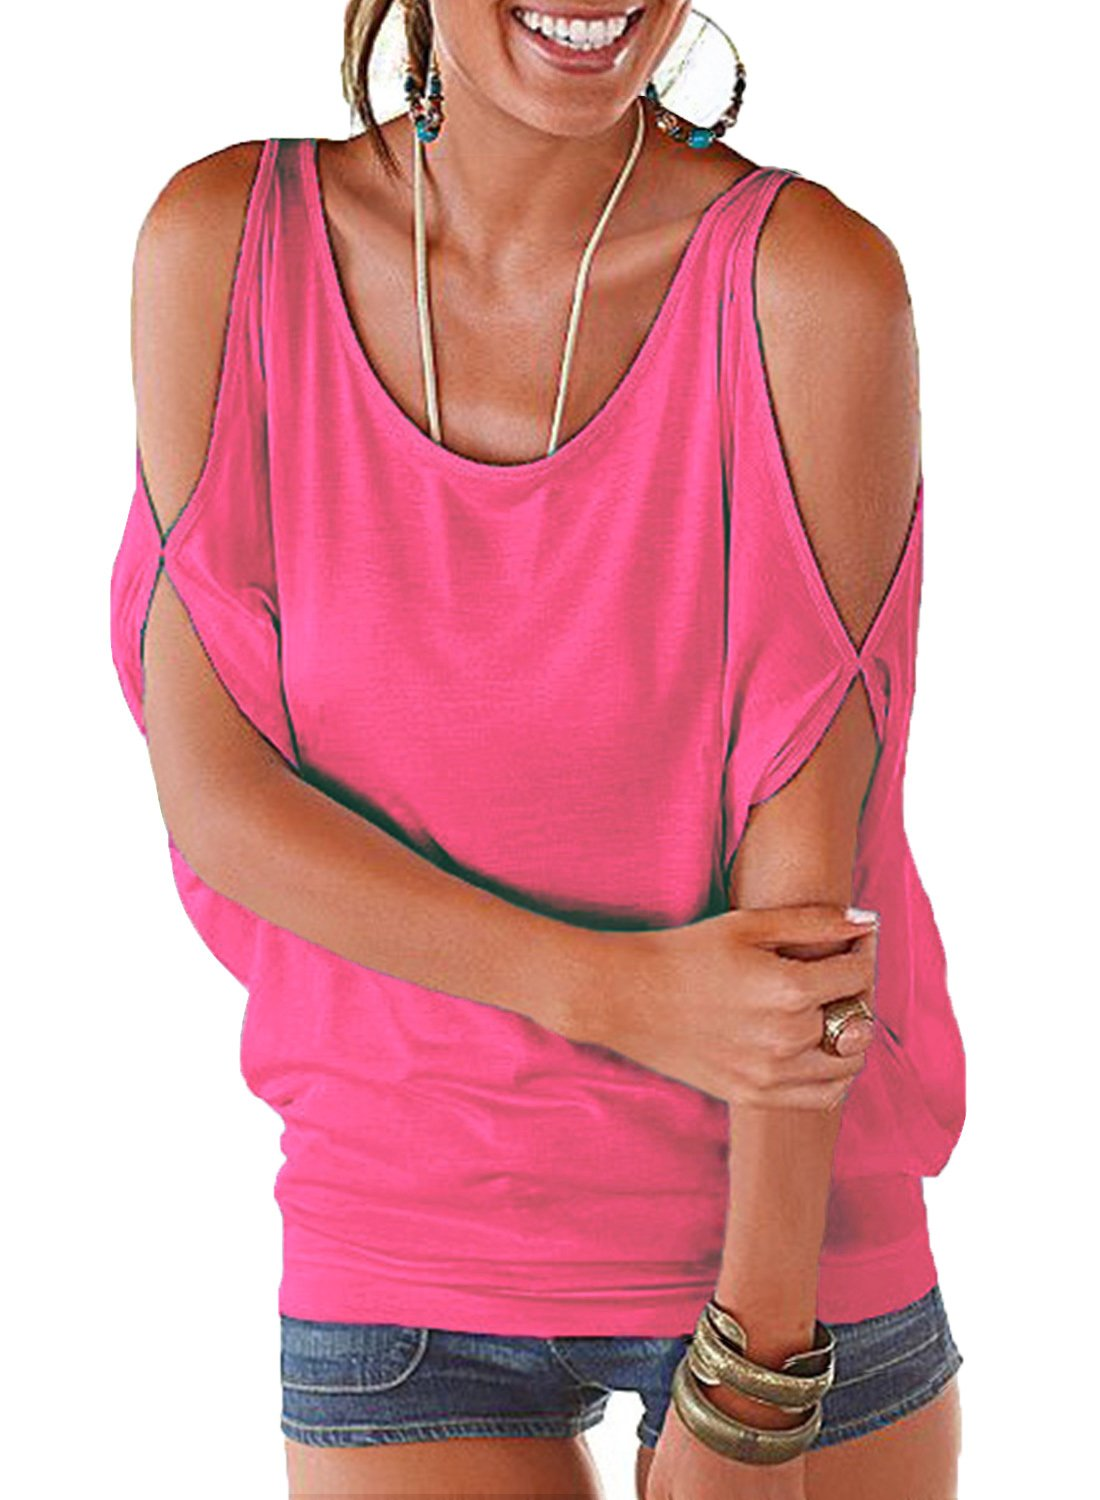 Ranphee Hot Pink Summer T Shirt Women Short Sleeve Cold Shoulder Loose Fit Pullover Casual Top